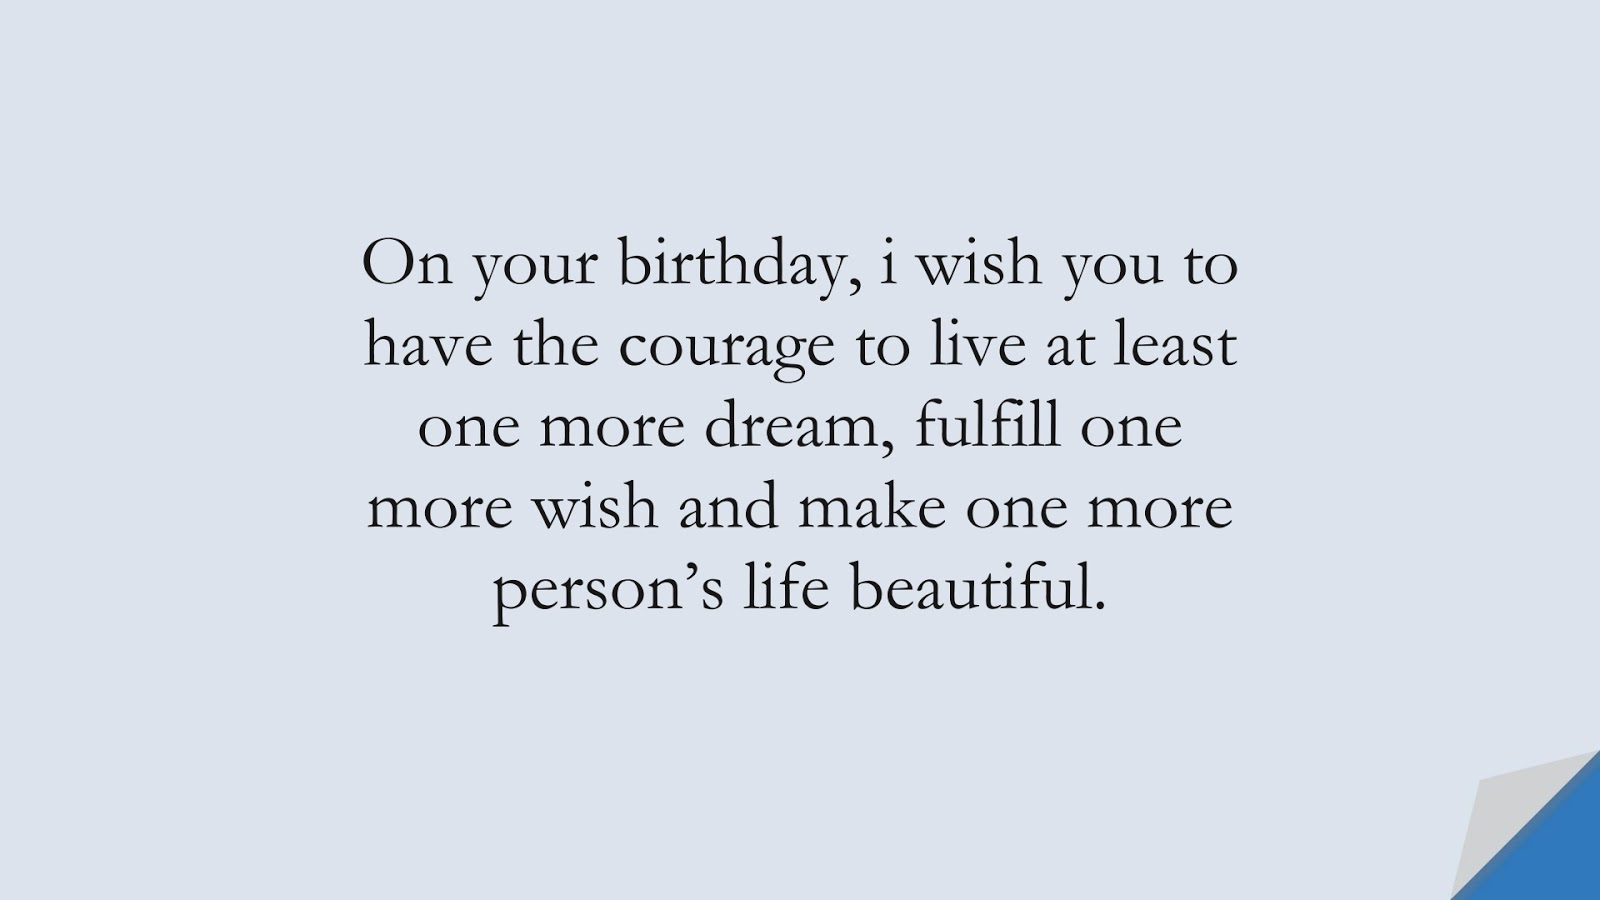 On your birthday, i wish you to have the courage to live at least one more dream, fulfill one more wish and make one more person's life beautiful.FALSE